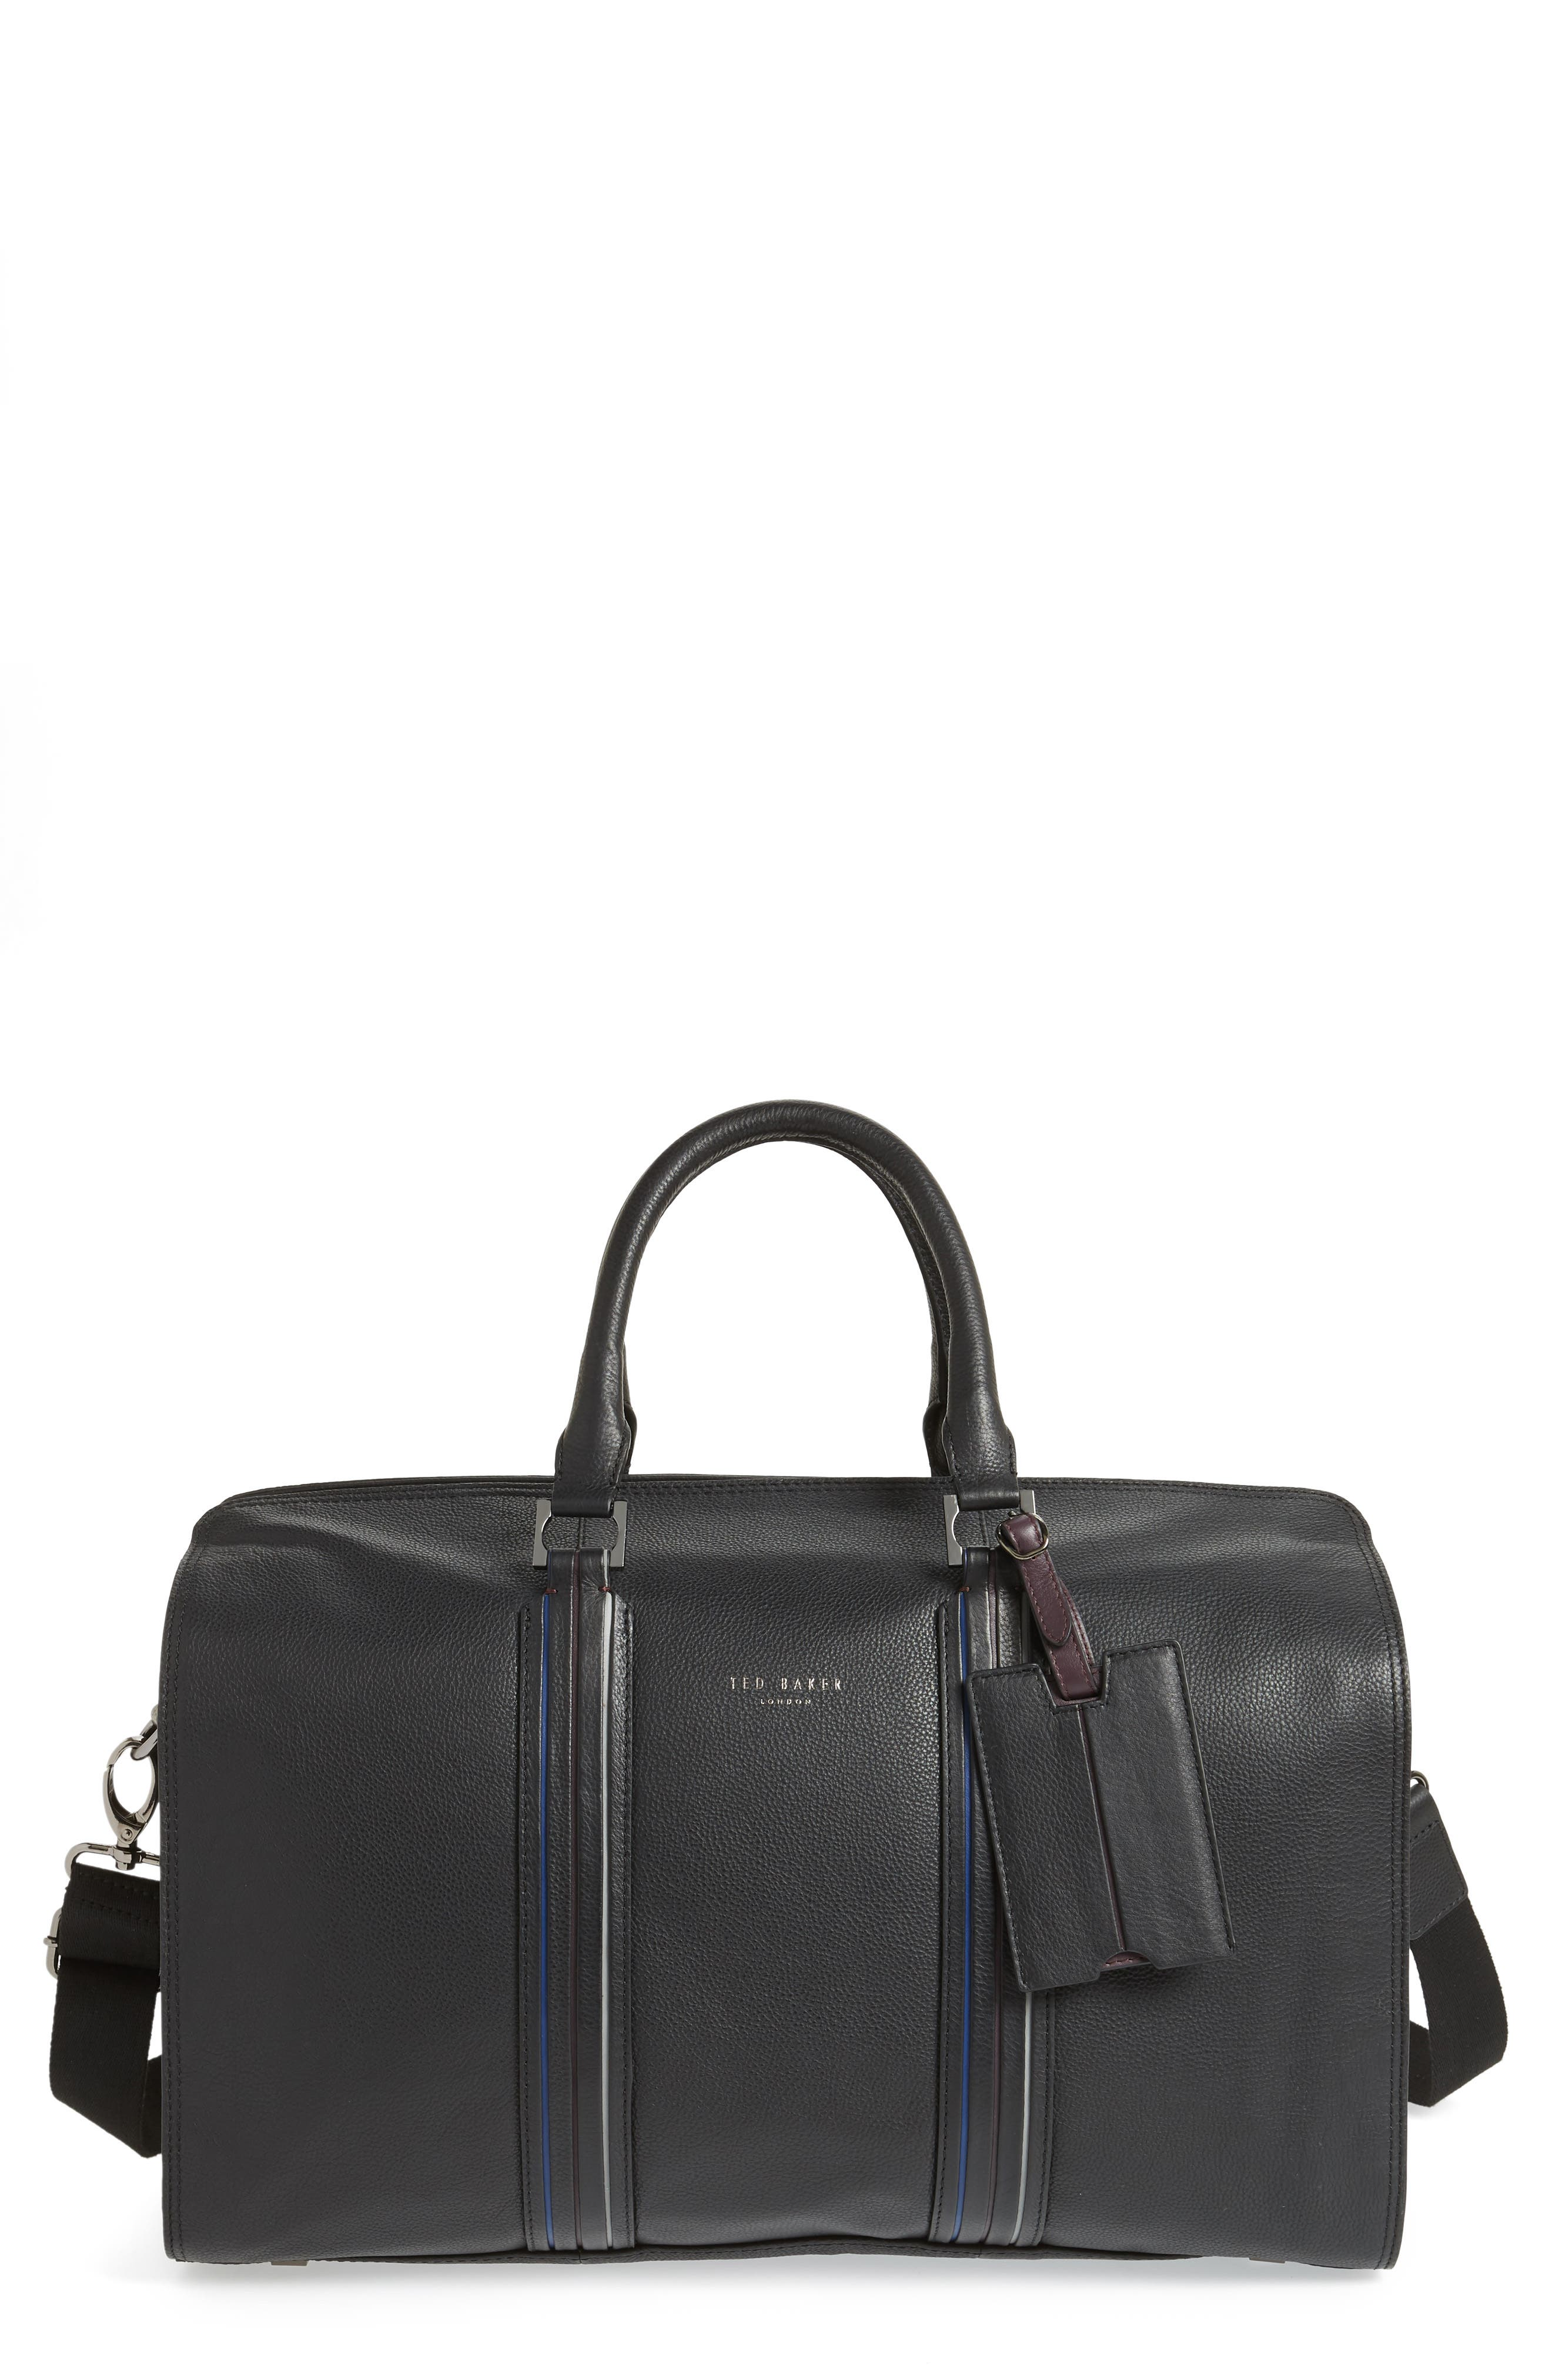 Geeves Stripe Leather Duffel Bag,                             Main thumbnail 1, color,                             Black